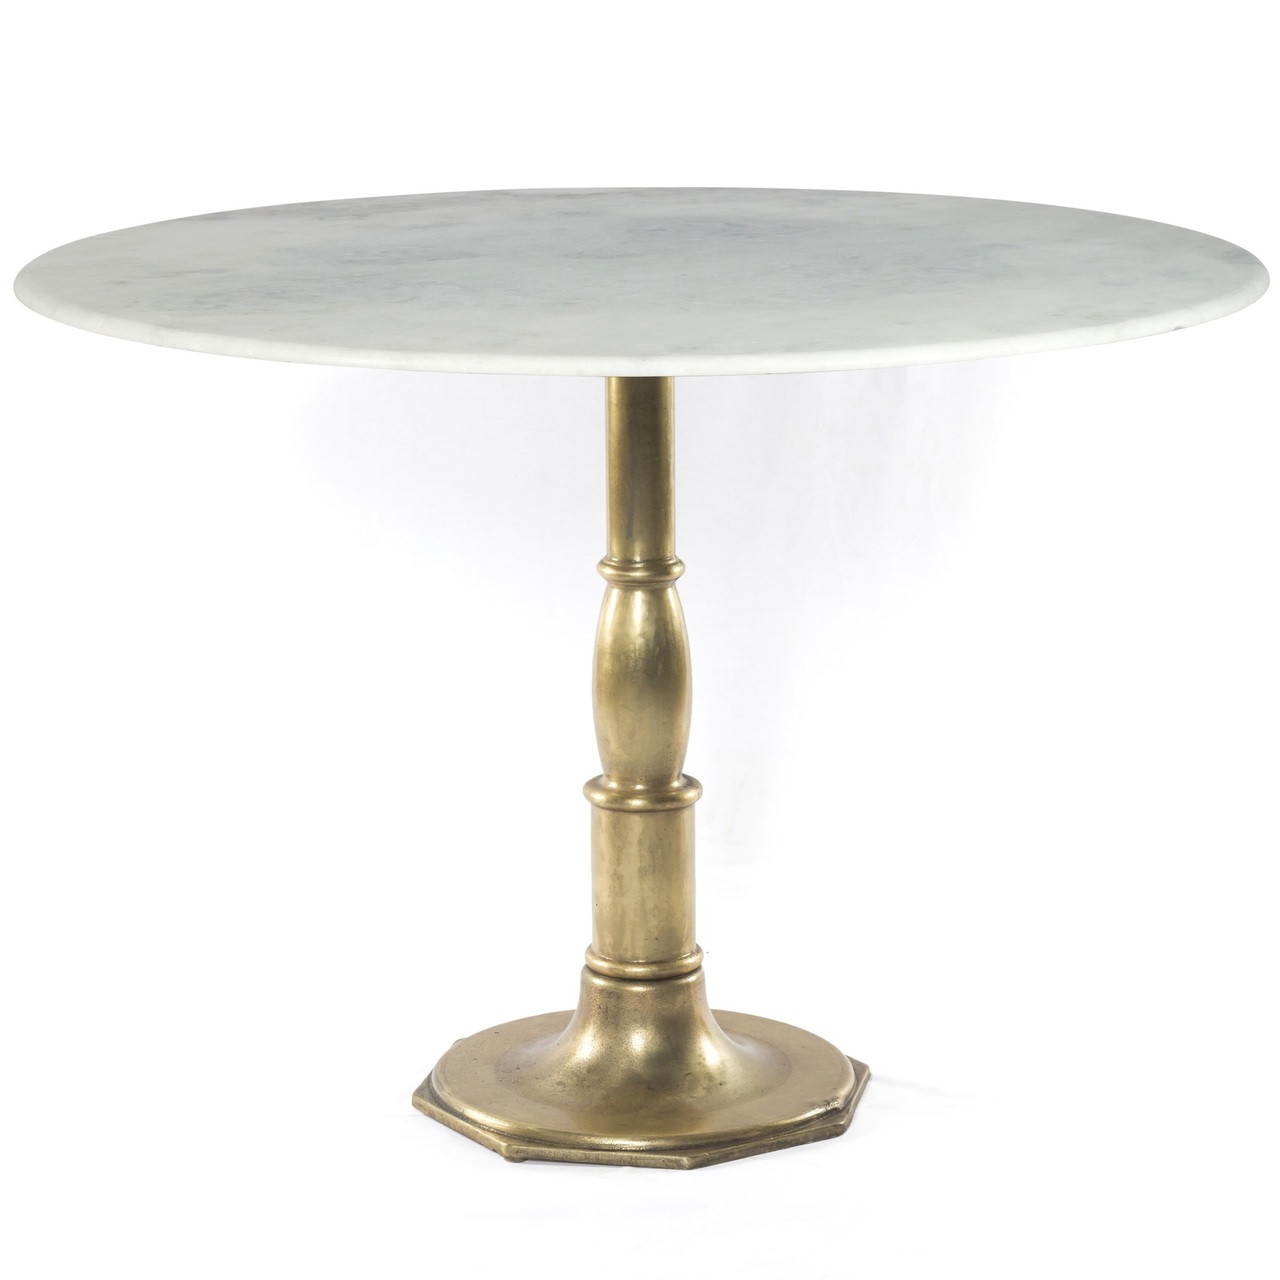 French Bistro White Marble Brass Pedestal Round Table 48 Zin Home